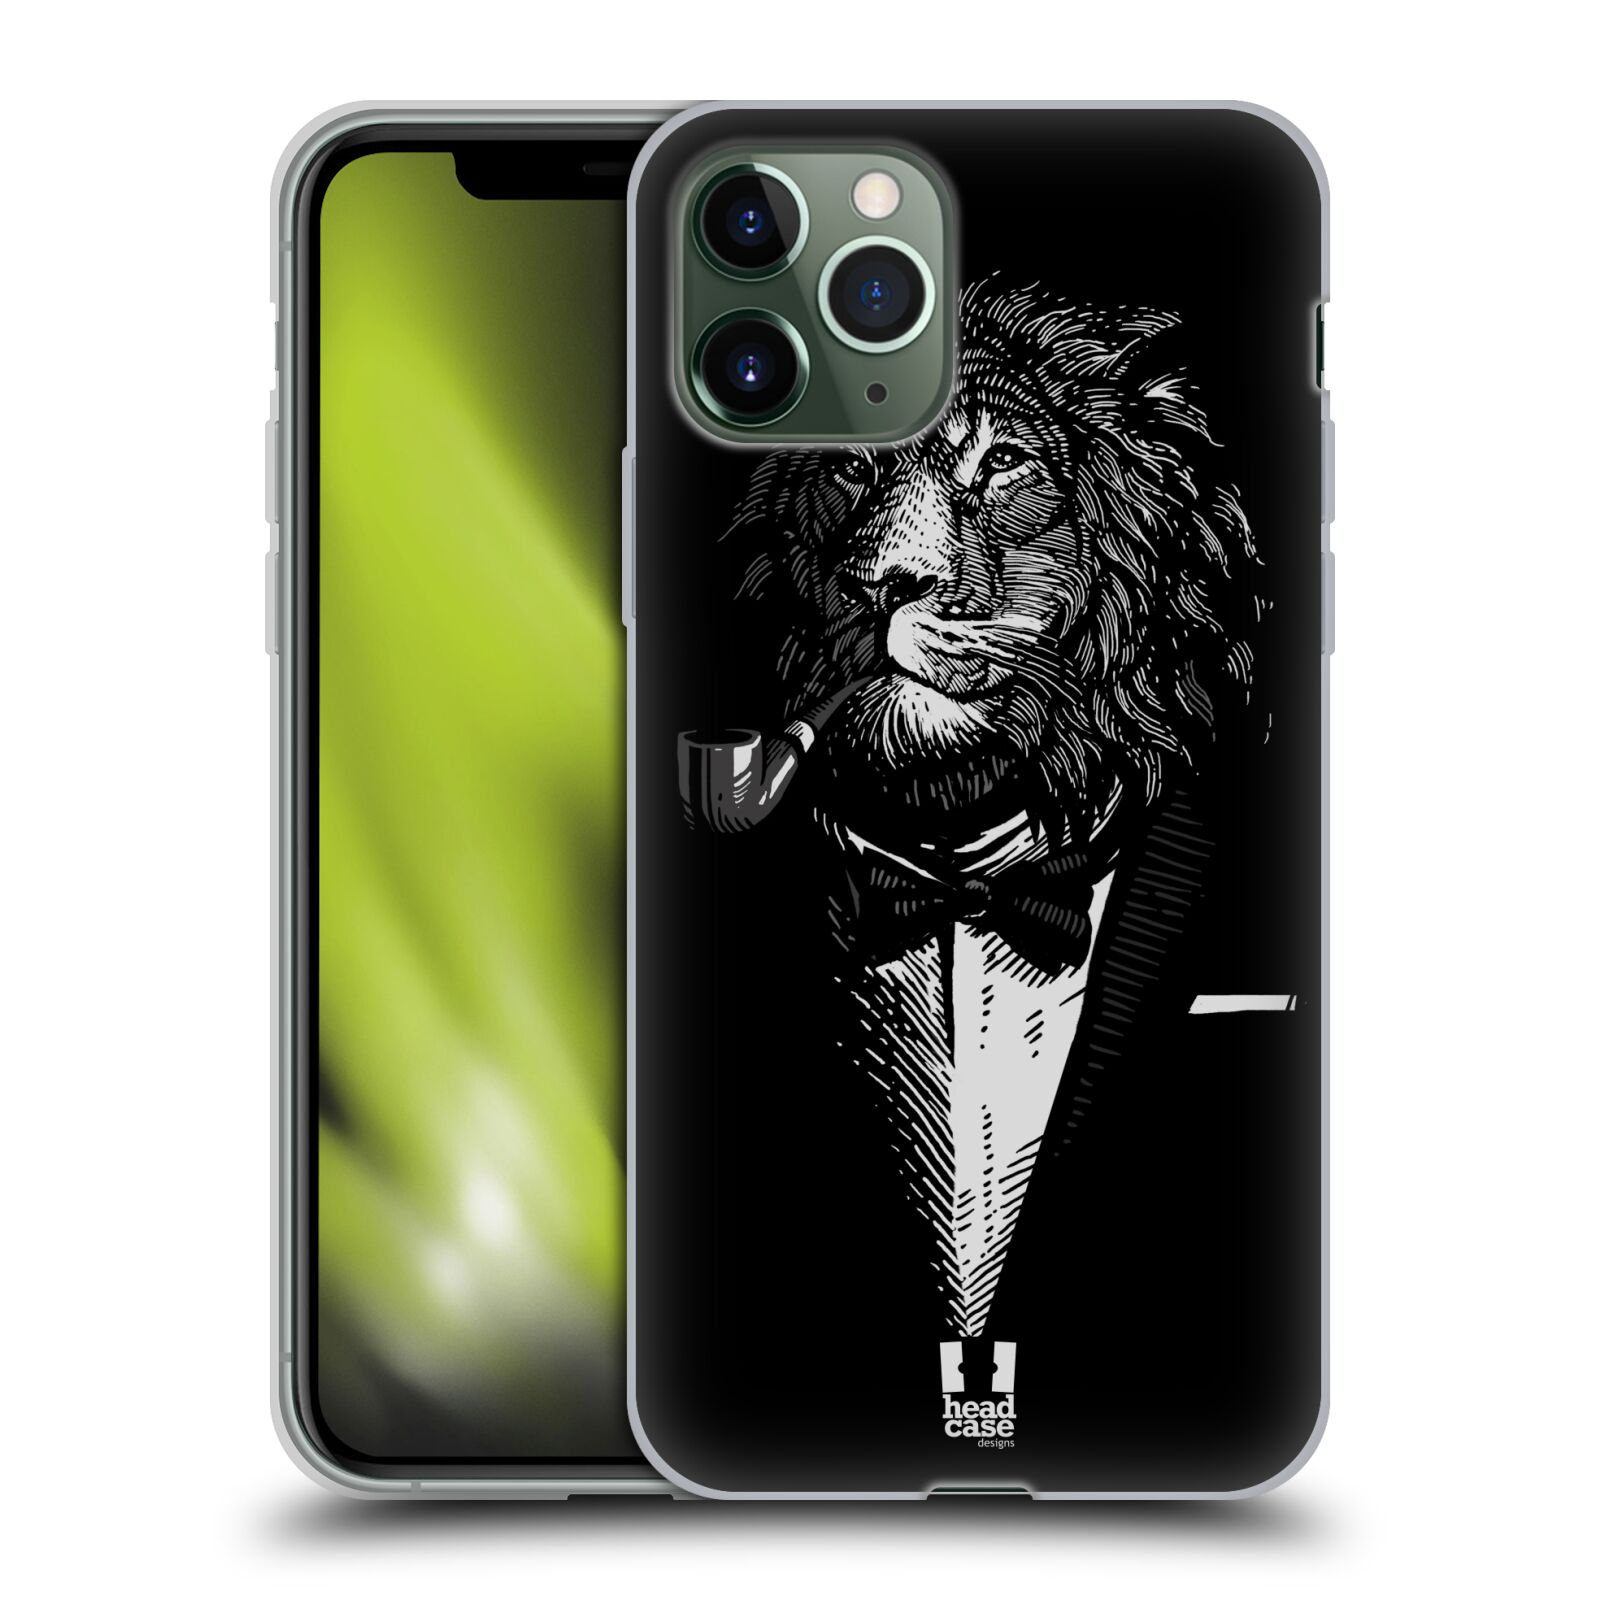 obal apple iphone 7 , Silikonové pouzdro na mobil Apple iPhone 11 Pro - Head Case - LEV V KVÁDRU